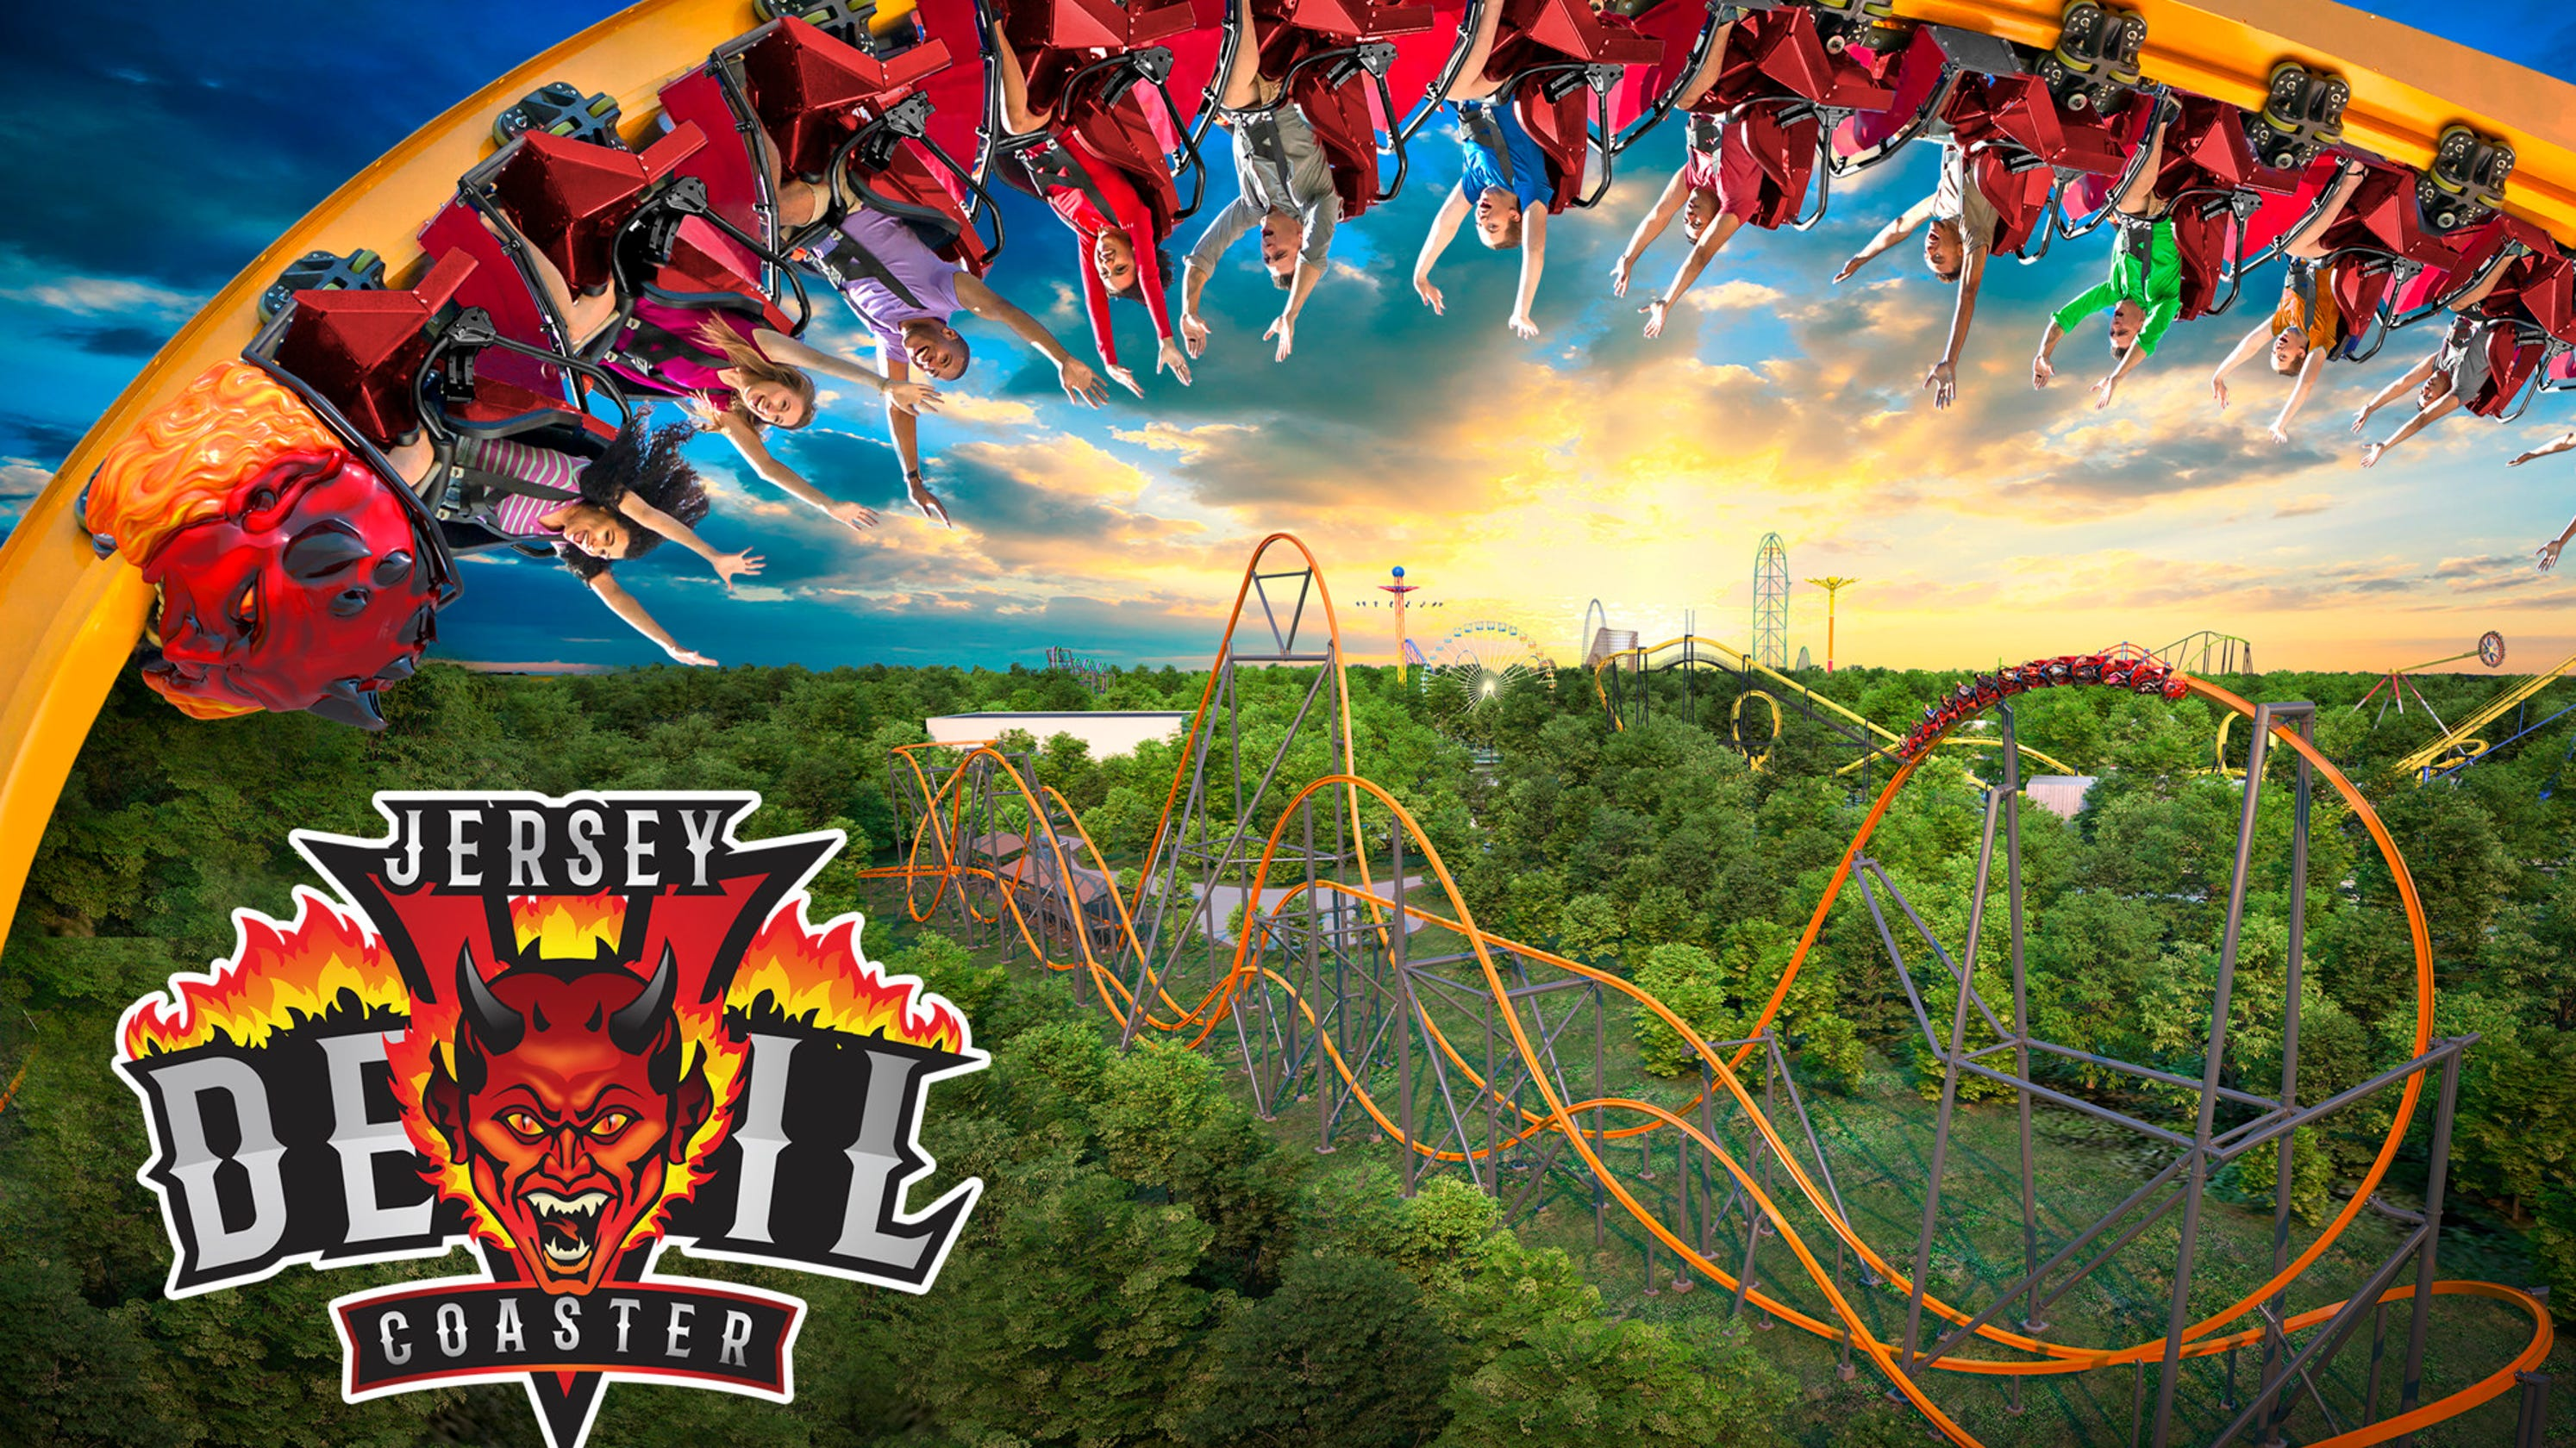 Six Flags 2020 preview: New Jersey's Devil coaster, Texas' Aquaman set to make a splash